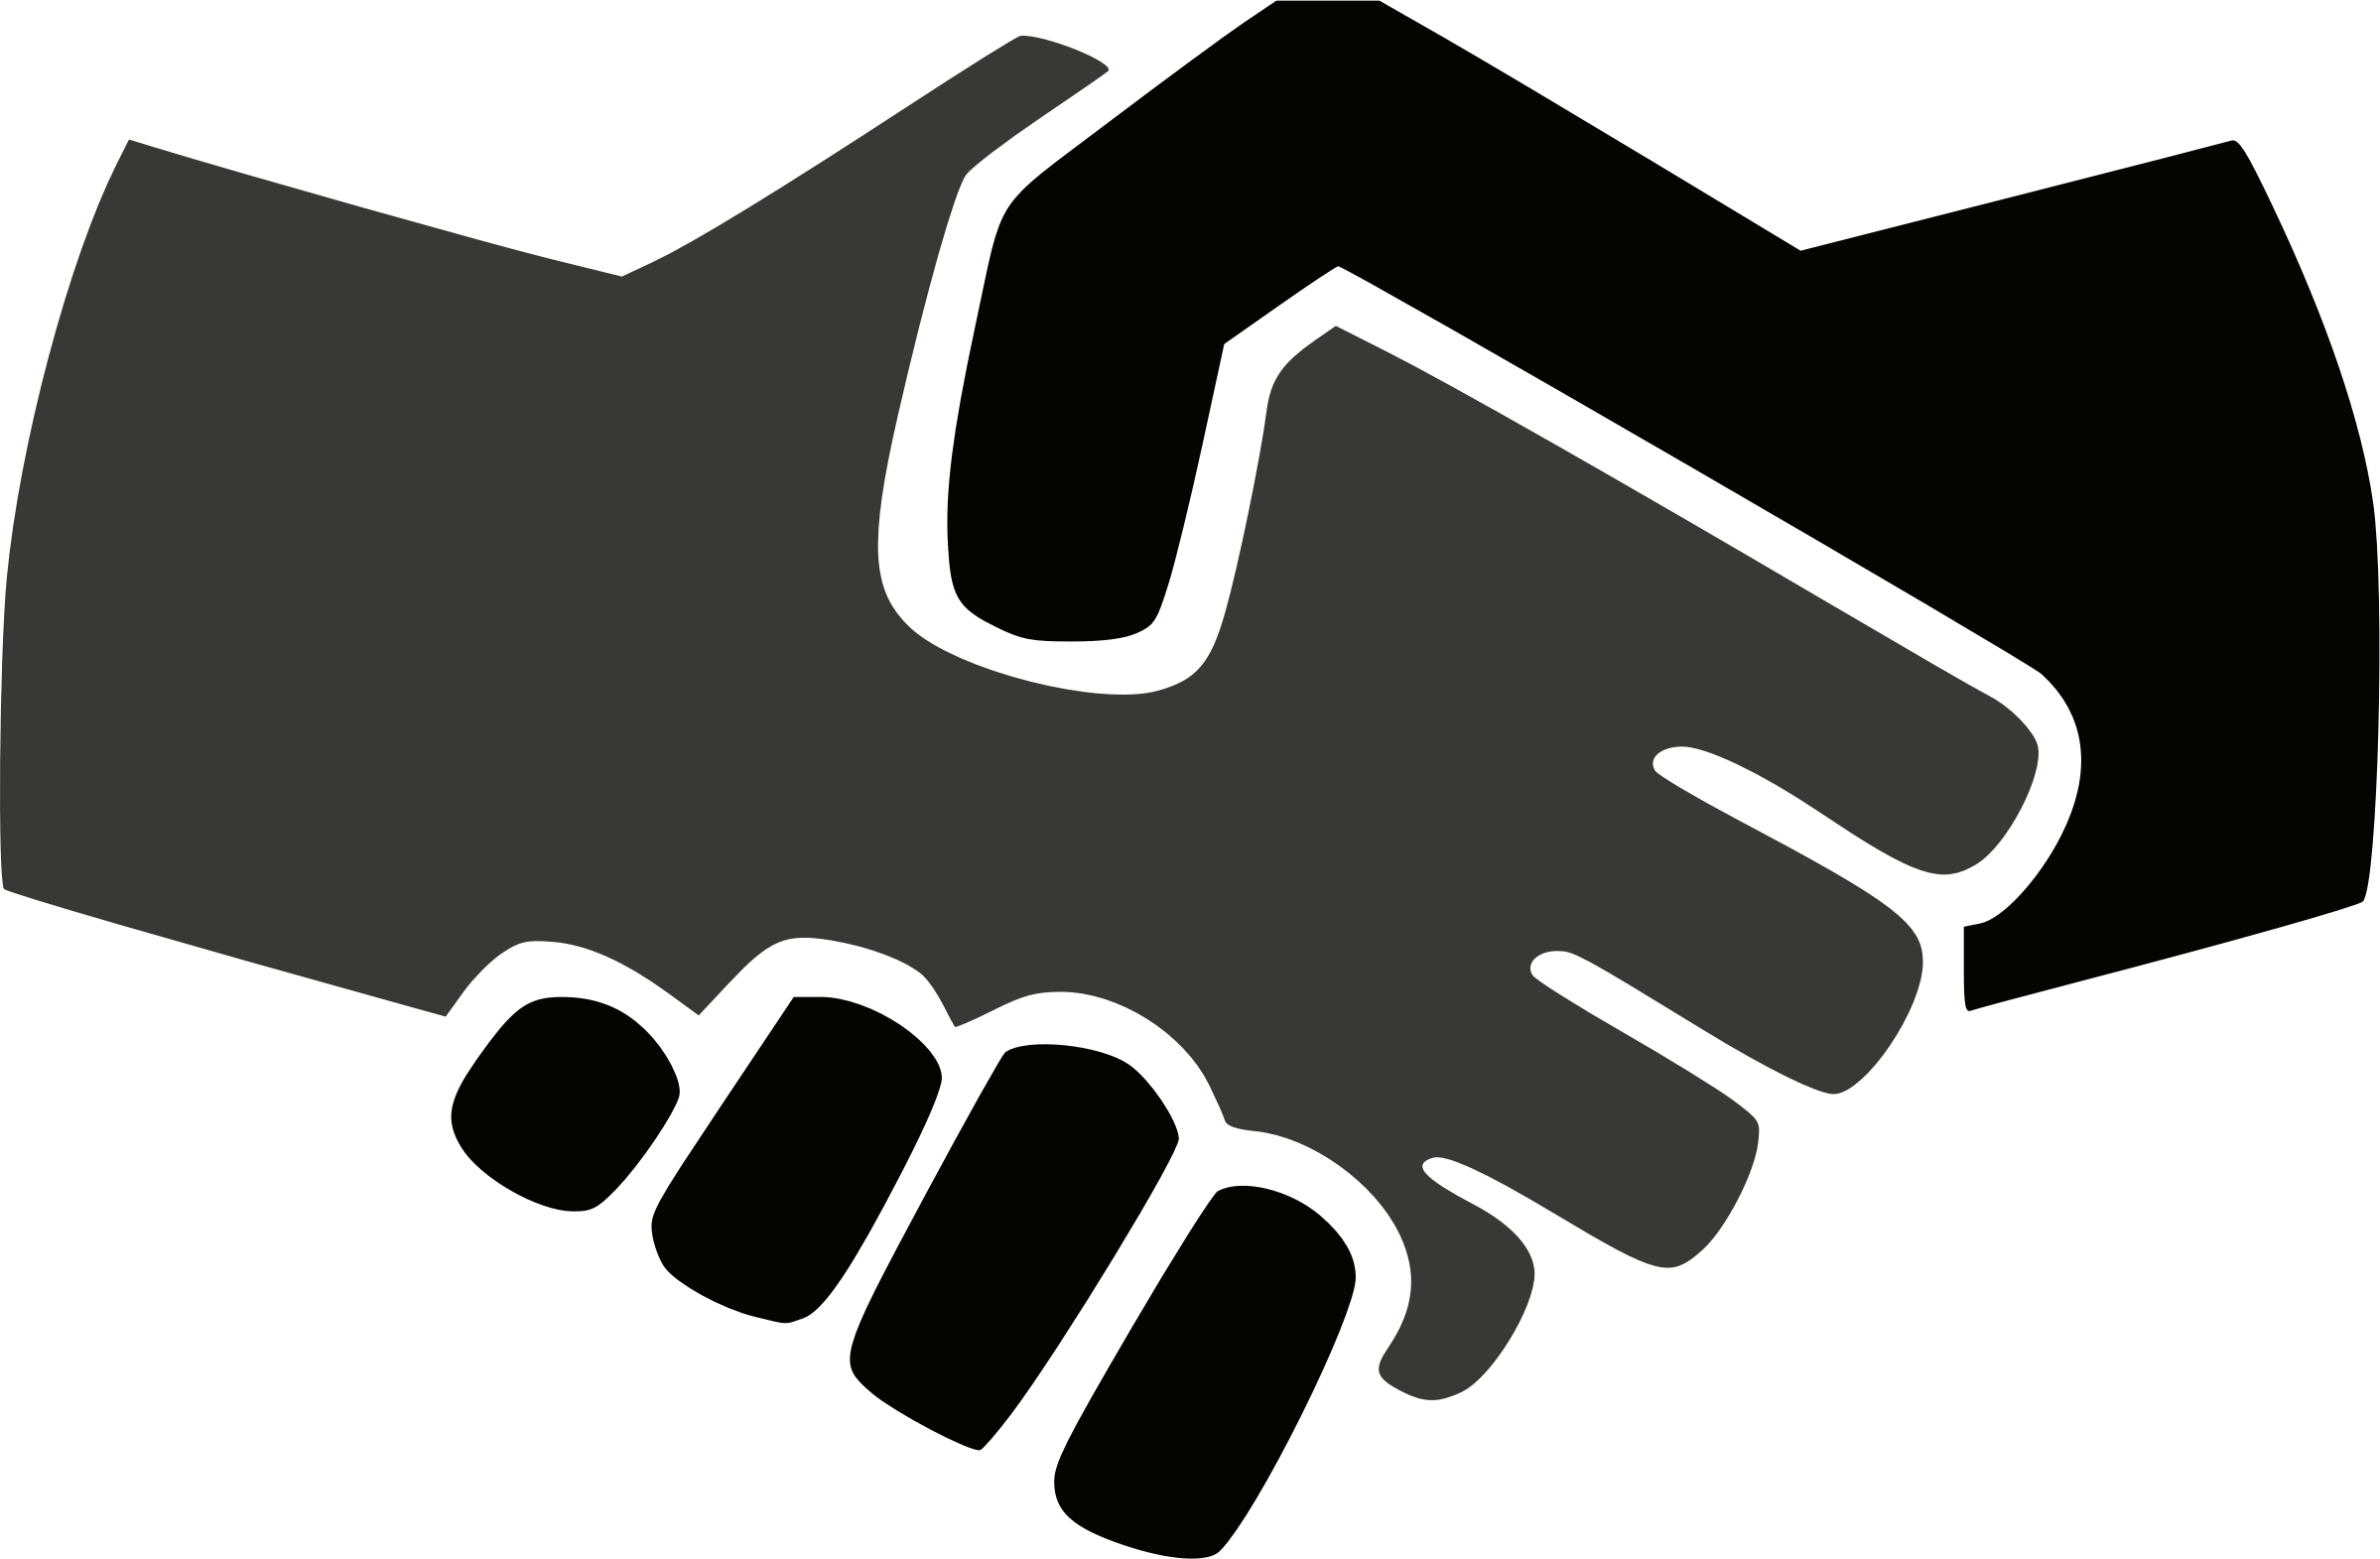 Handshake clipart. Black and white big